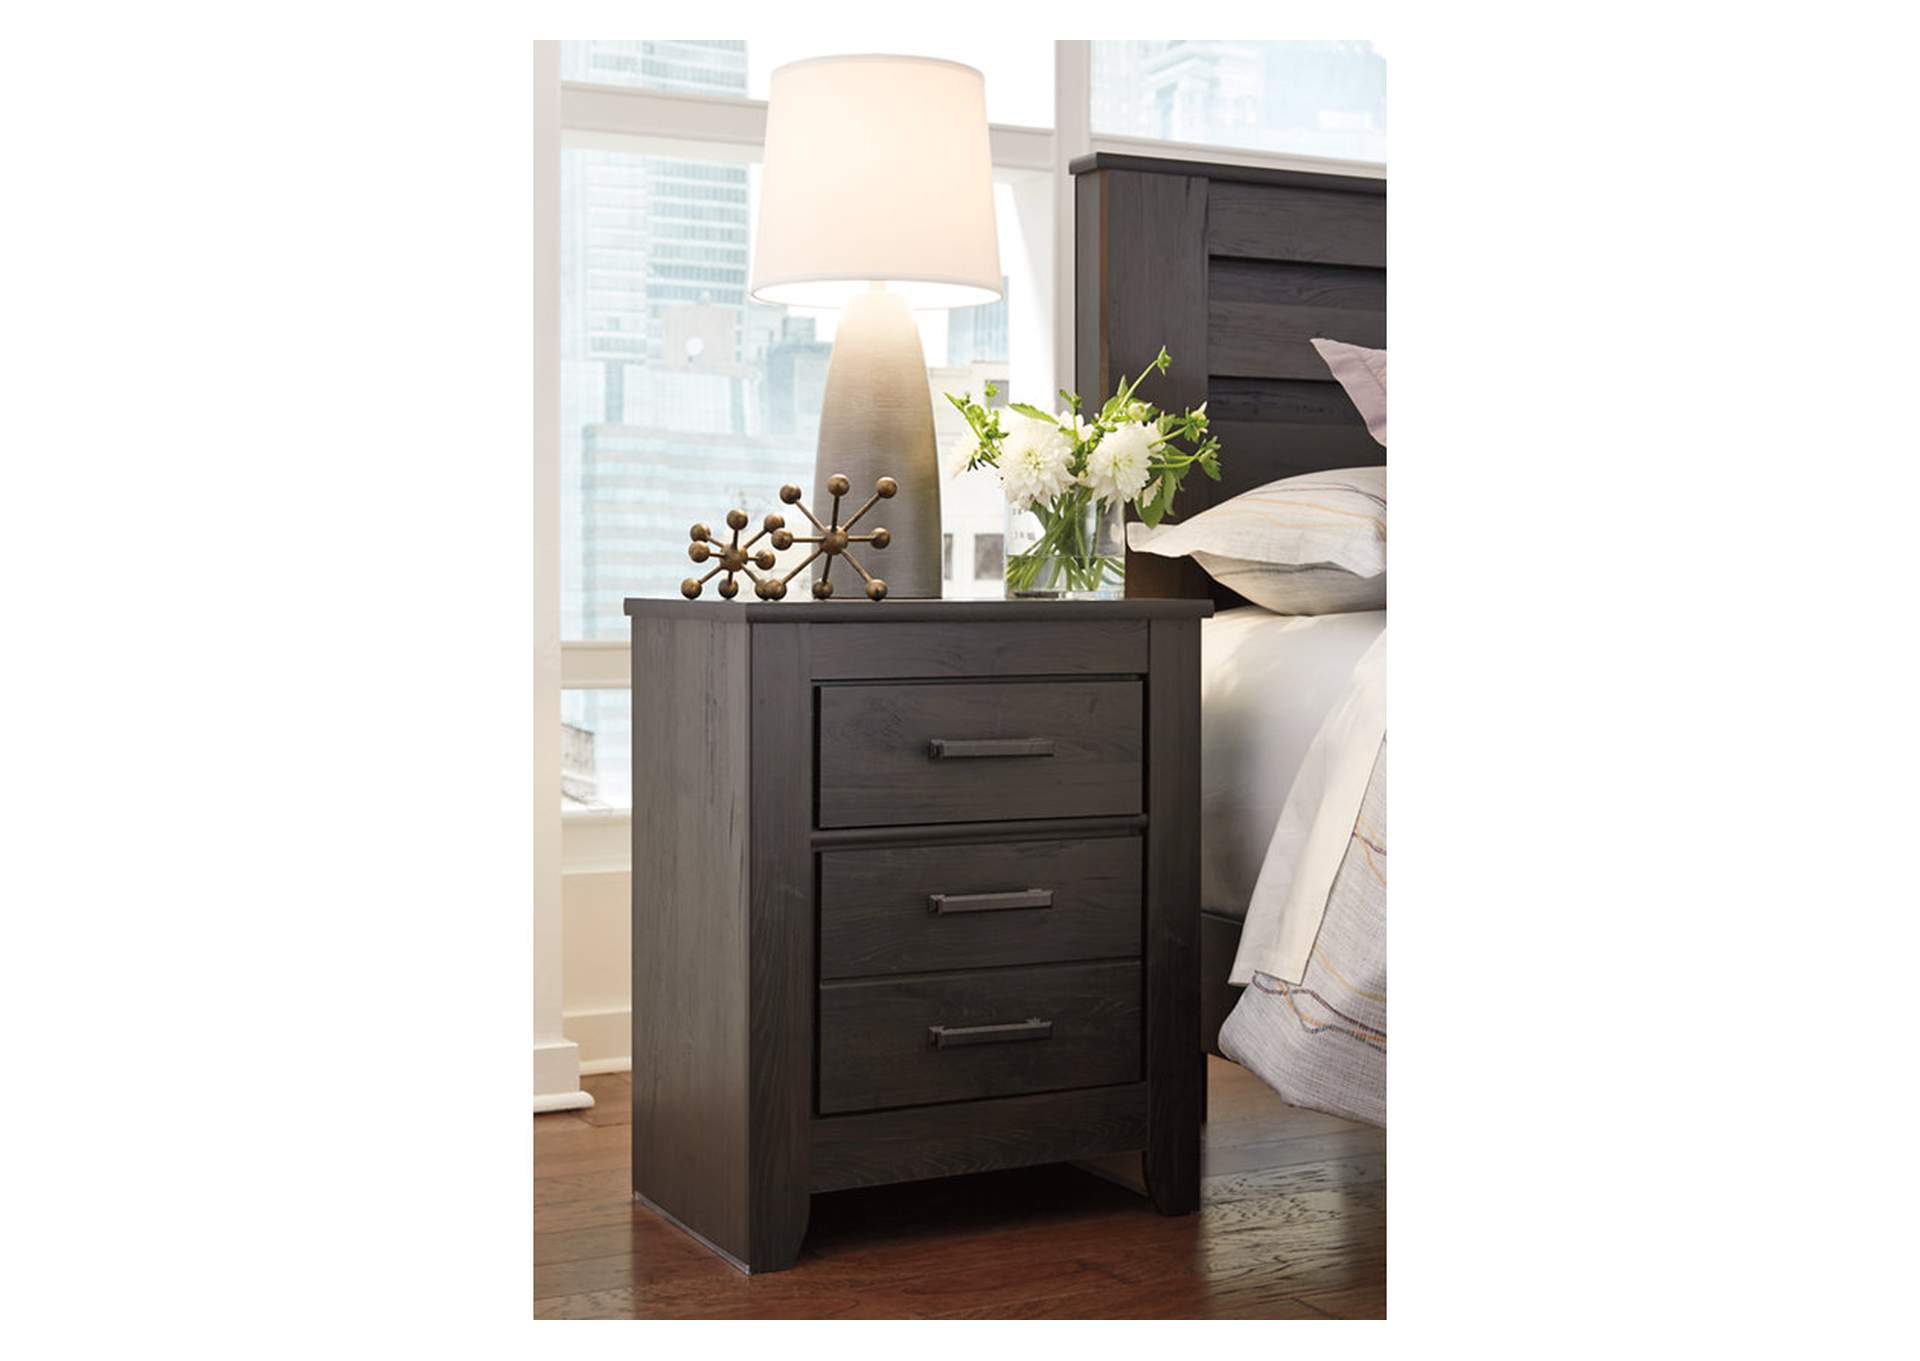 Brinxton Black 2 Drawer Nightstand,Direct To Consumer Express